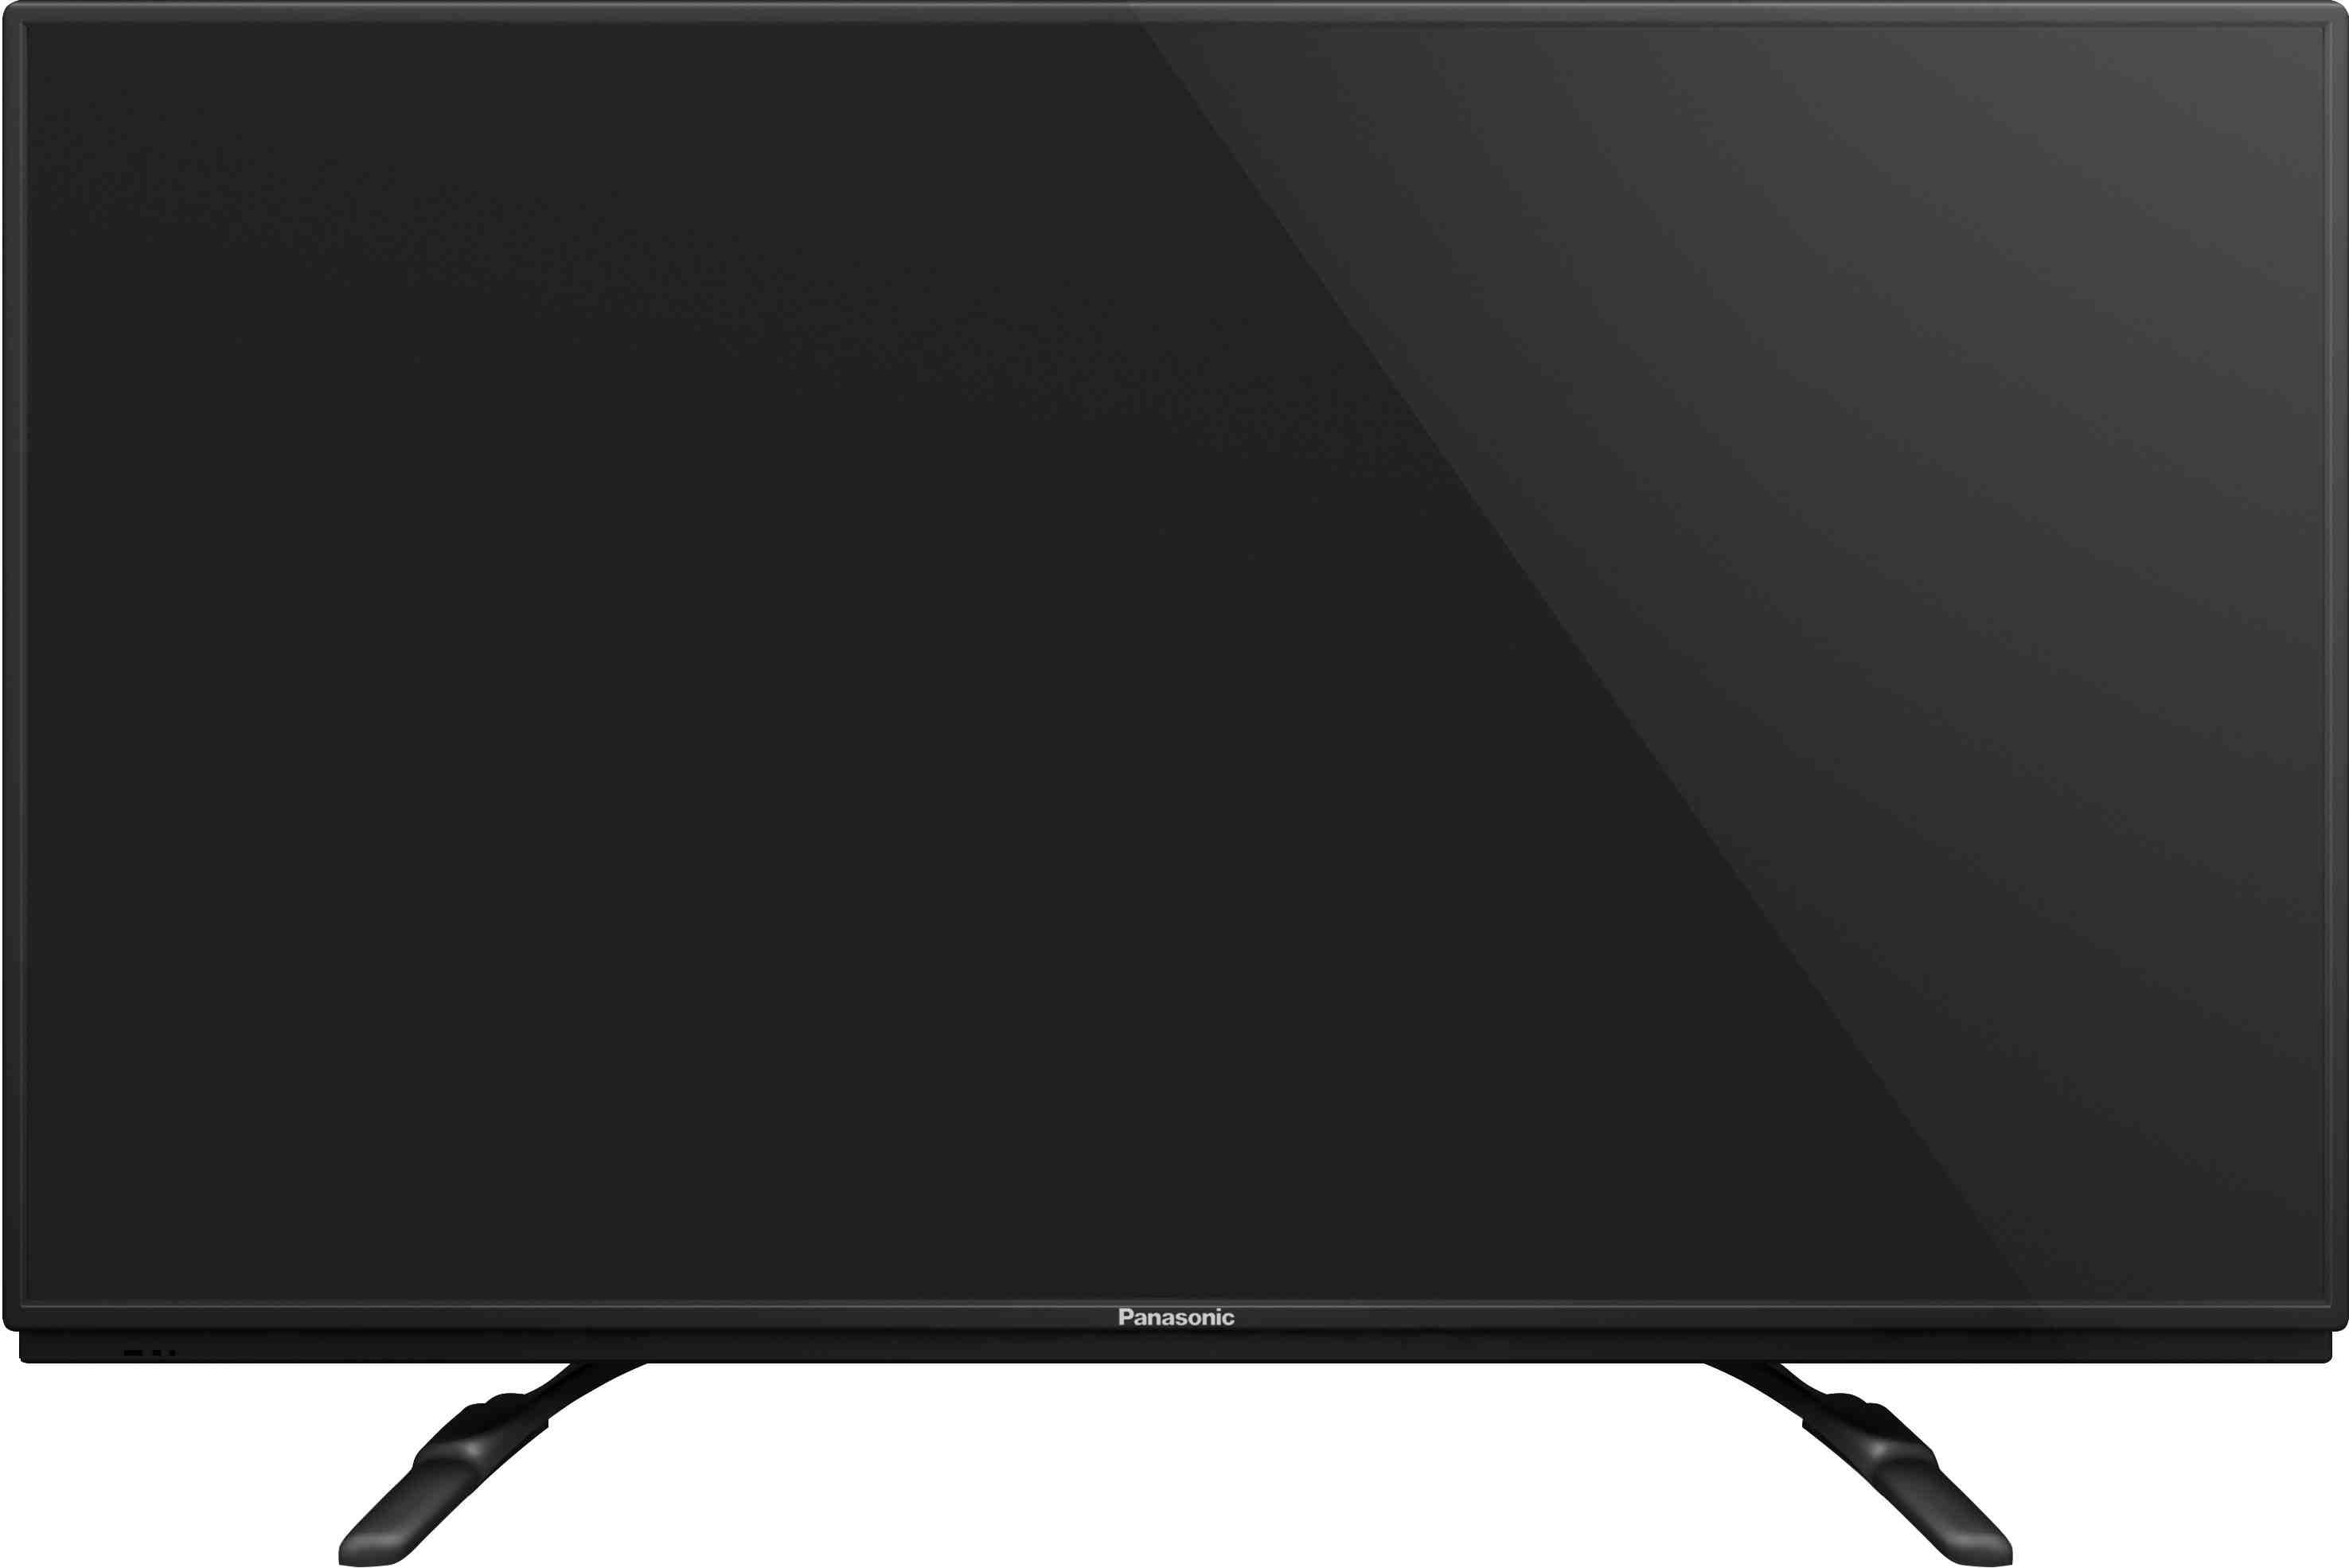 Best price on Panasonic TH-40C400D 40 Inch Full HD LED TV  in India